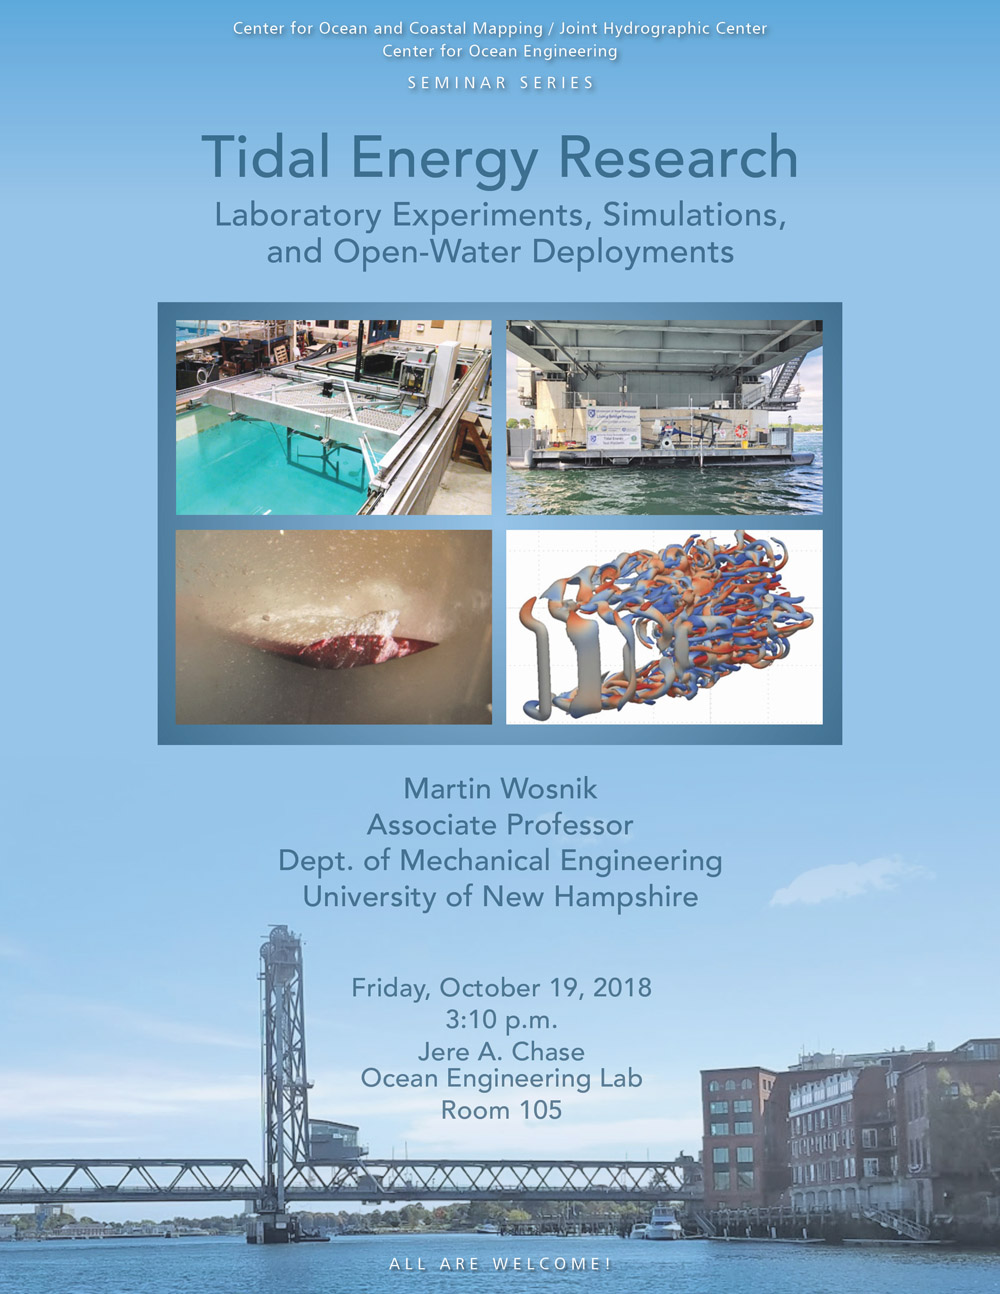 Tidal Energy Research – Laboratory Experiments, Simulations, and